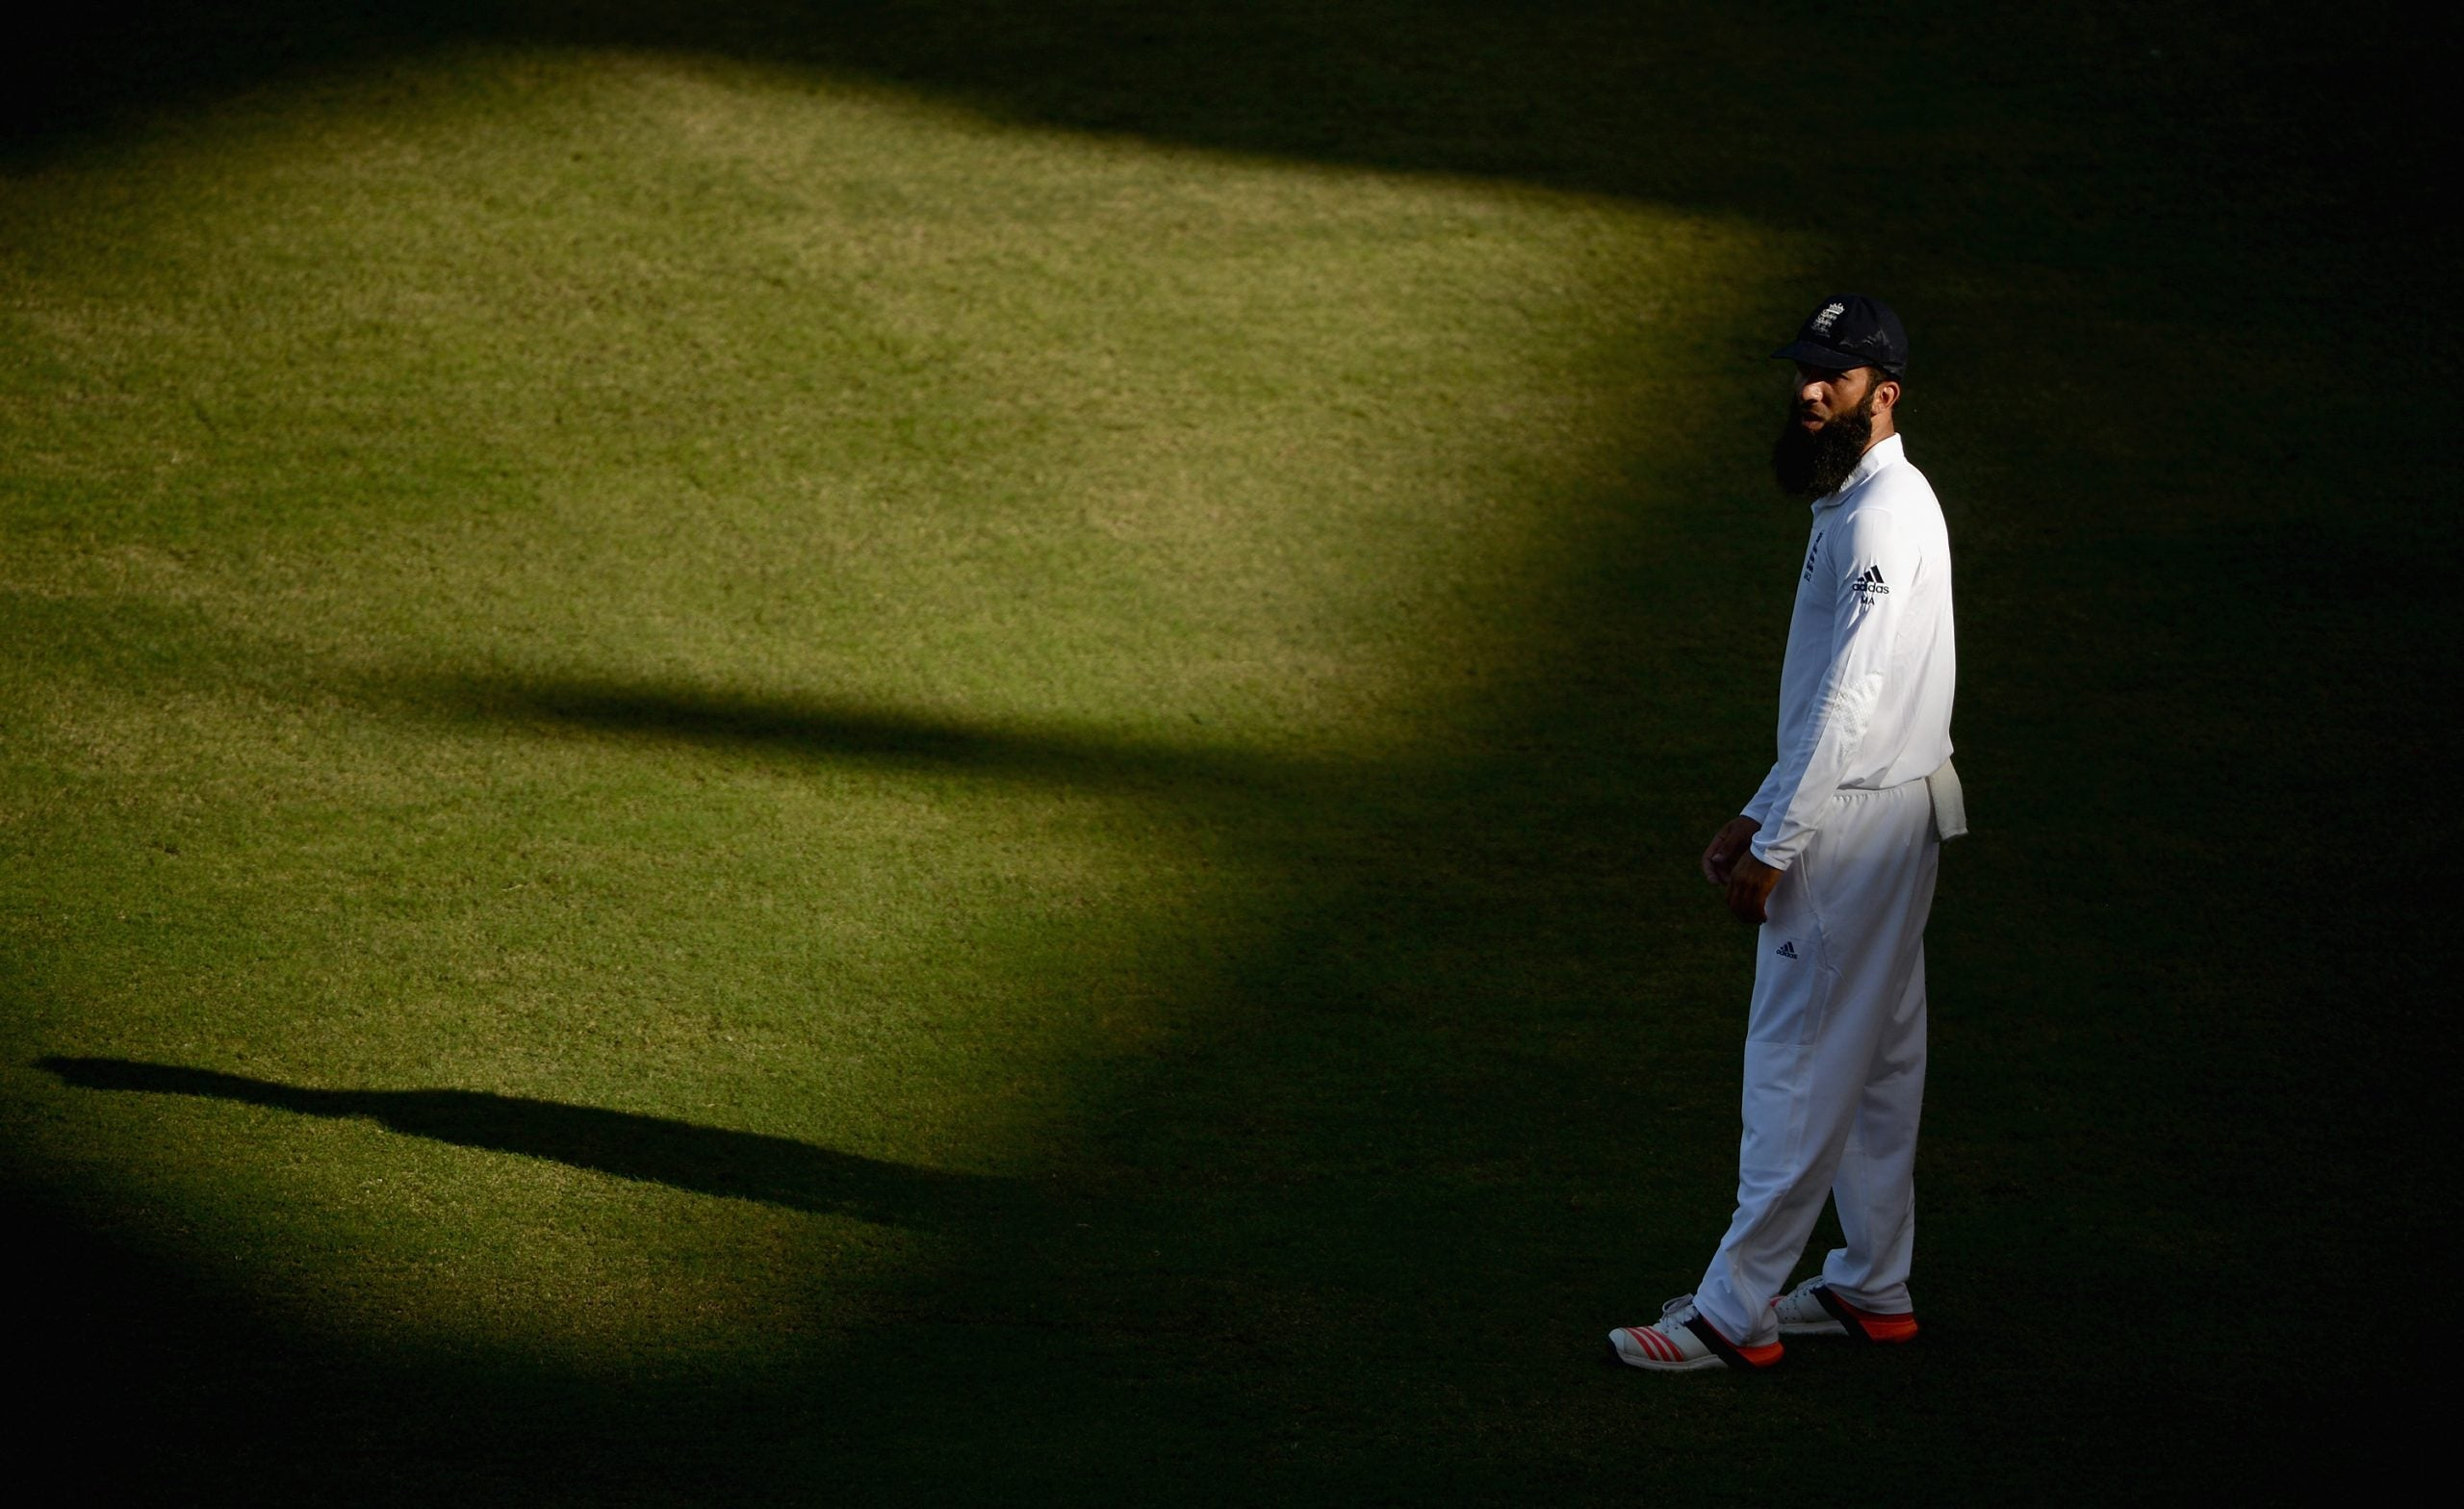 Moeen Ali's journey to the margins shows English cricket still struggles with difference